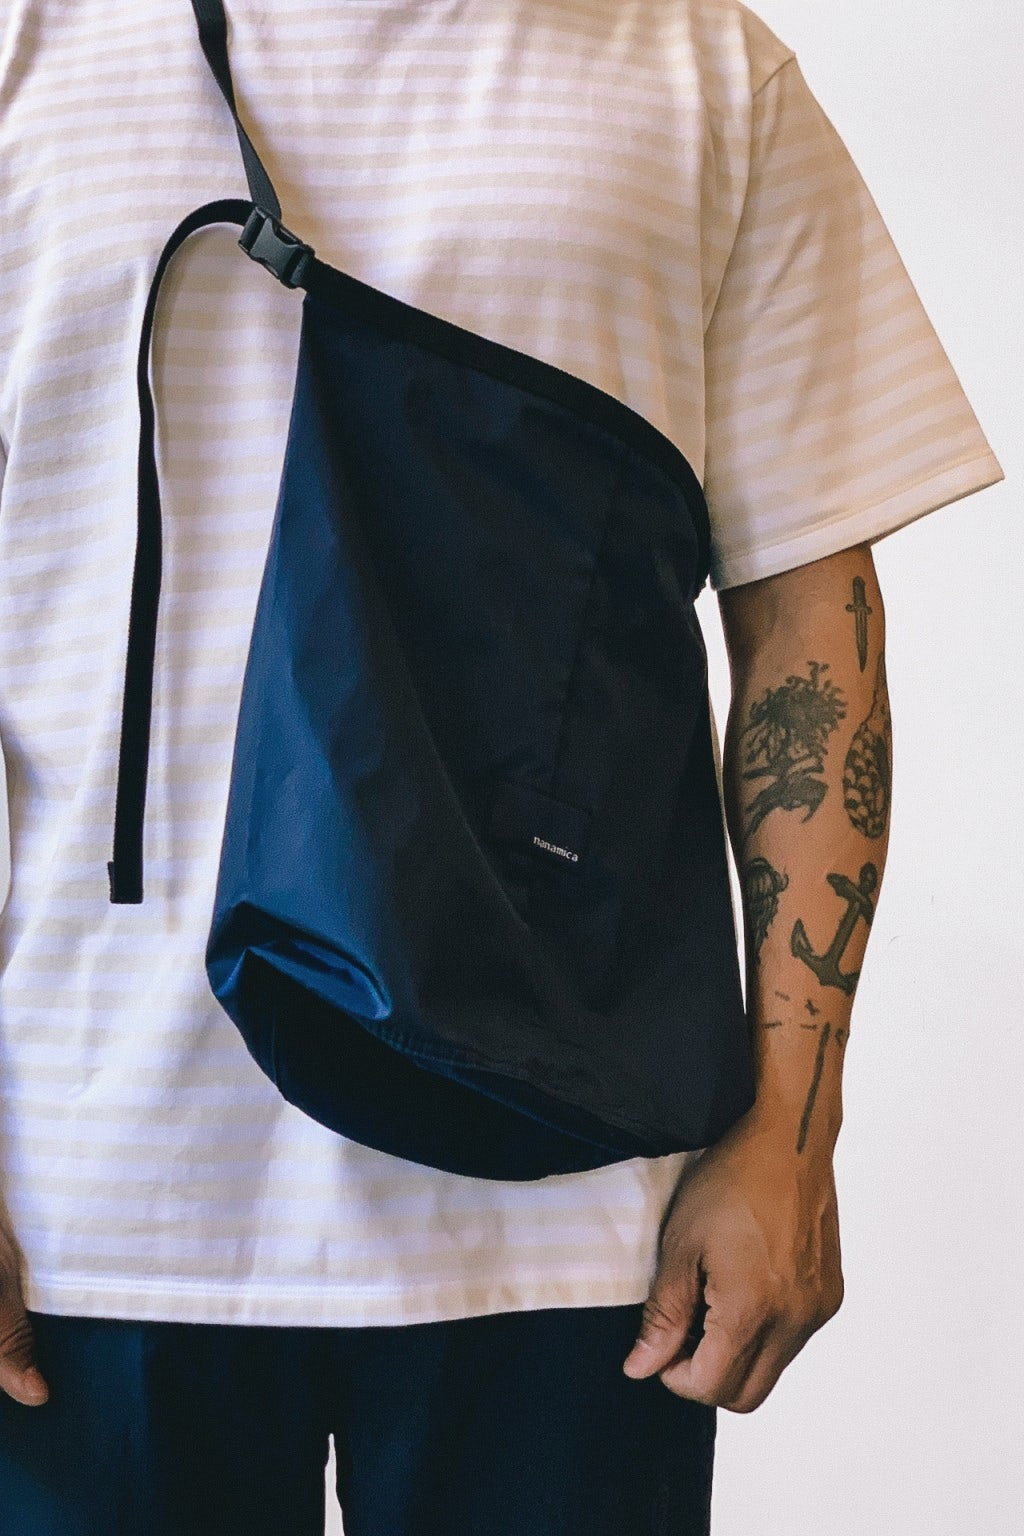 Nanamica Nanamican Utility Shoulder Bag S Navy